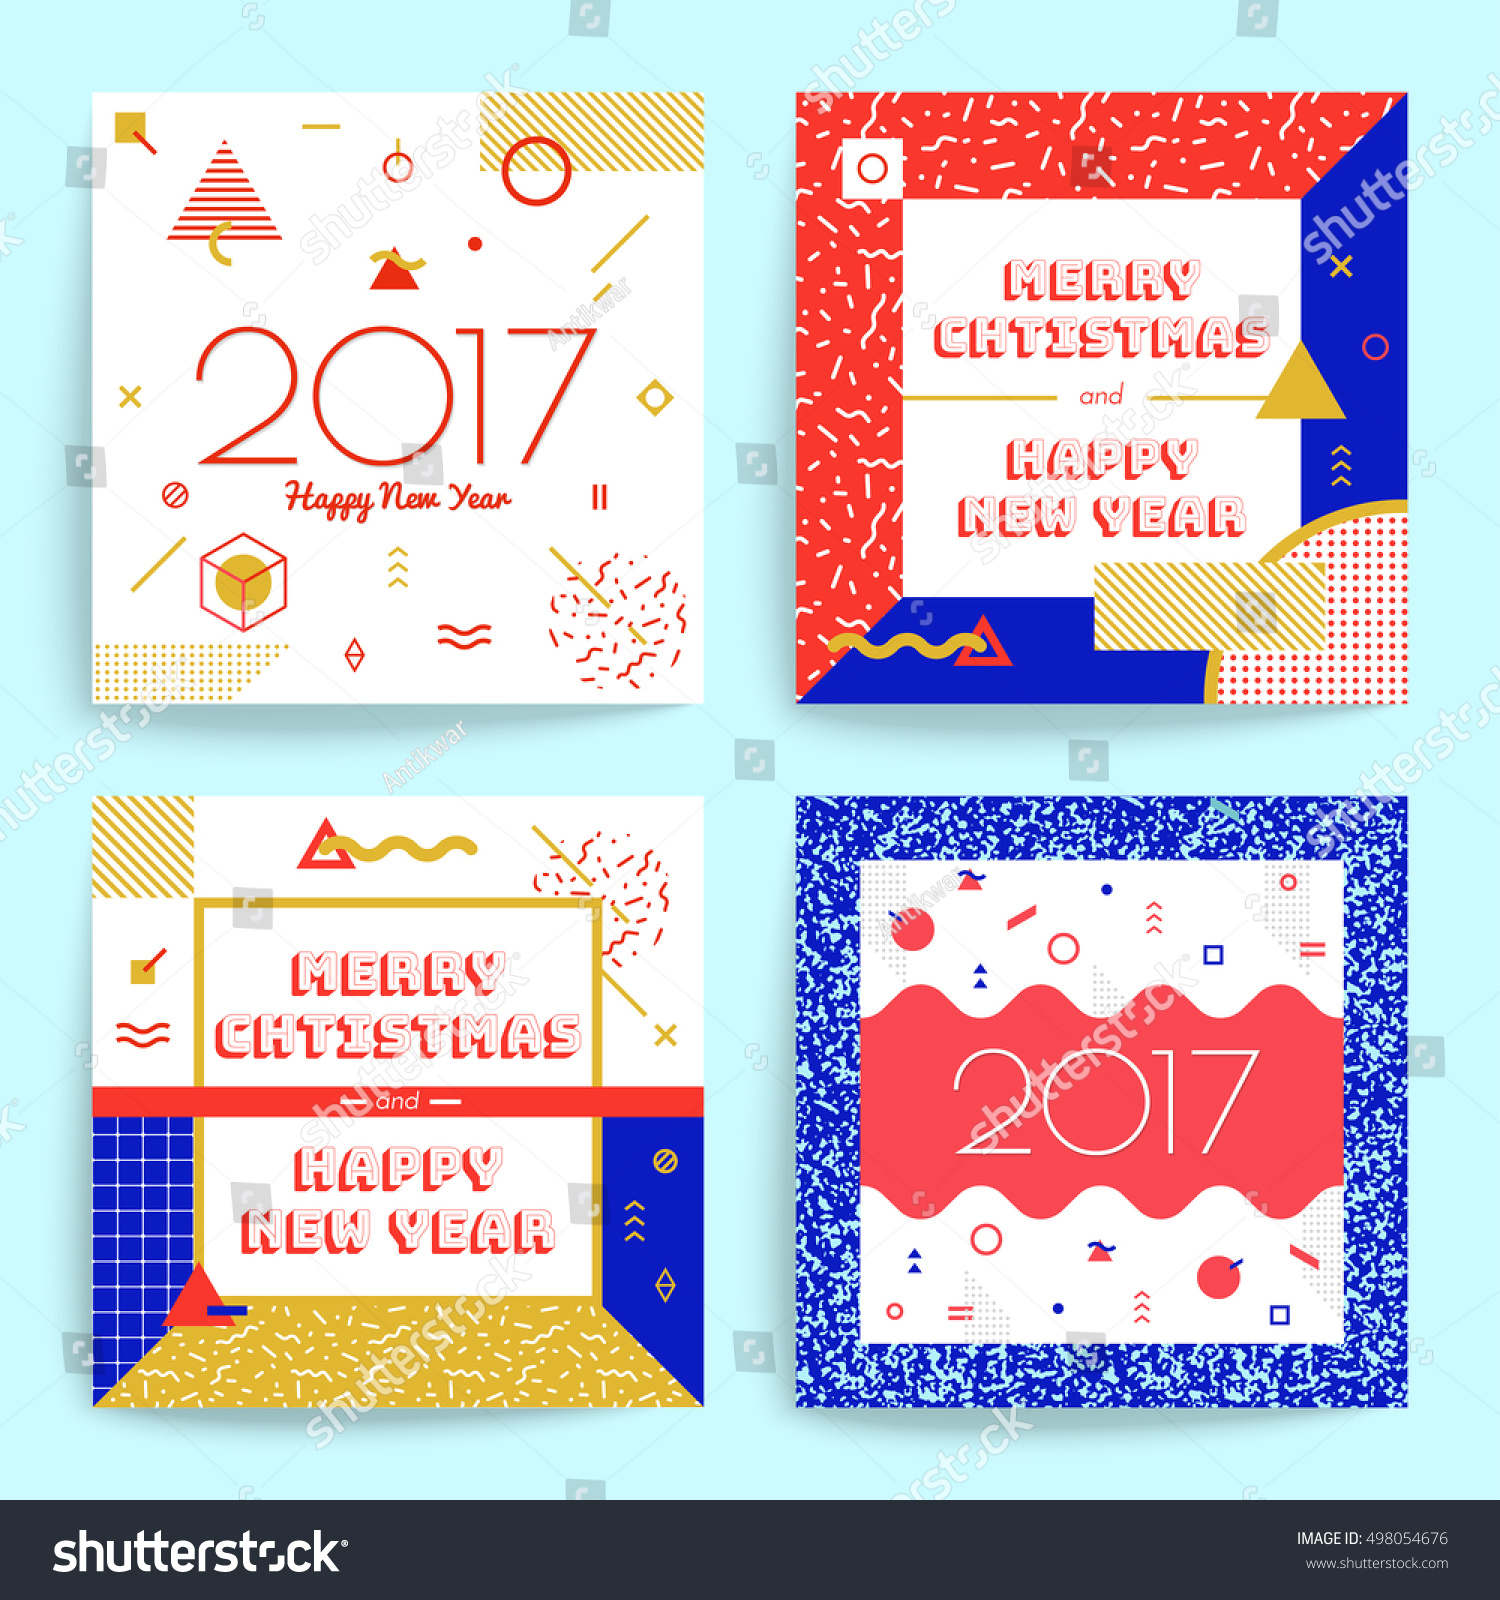 Christmas New Year Greeting Cards Multicolored Stock Vector (Royalty ...